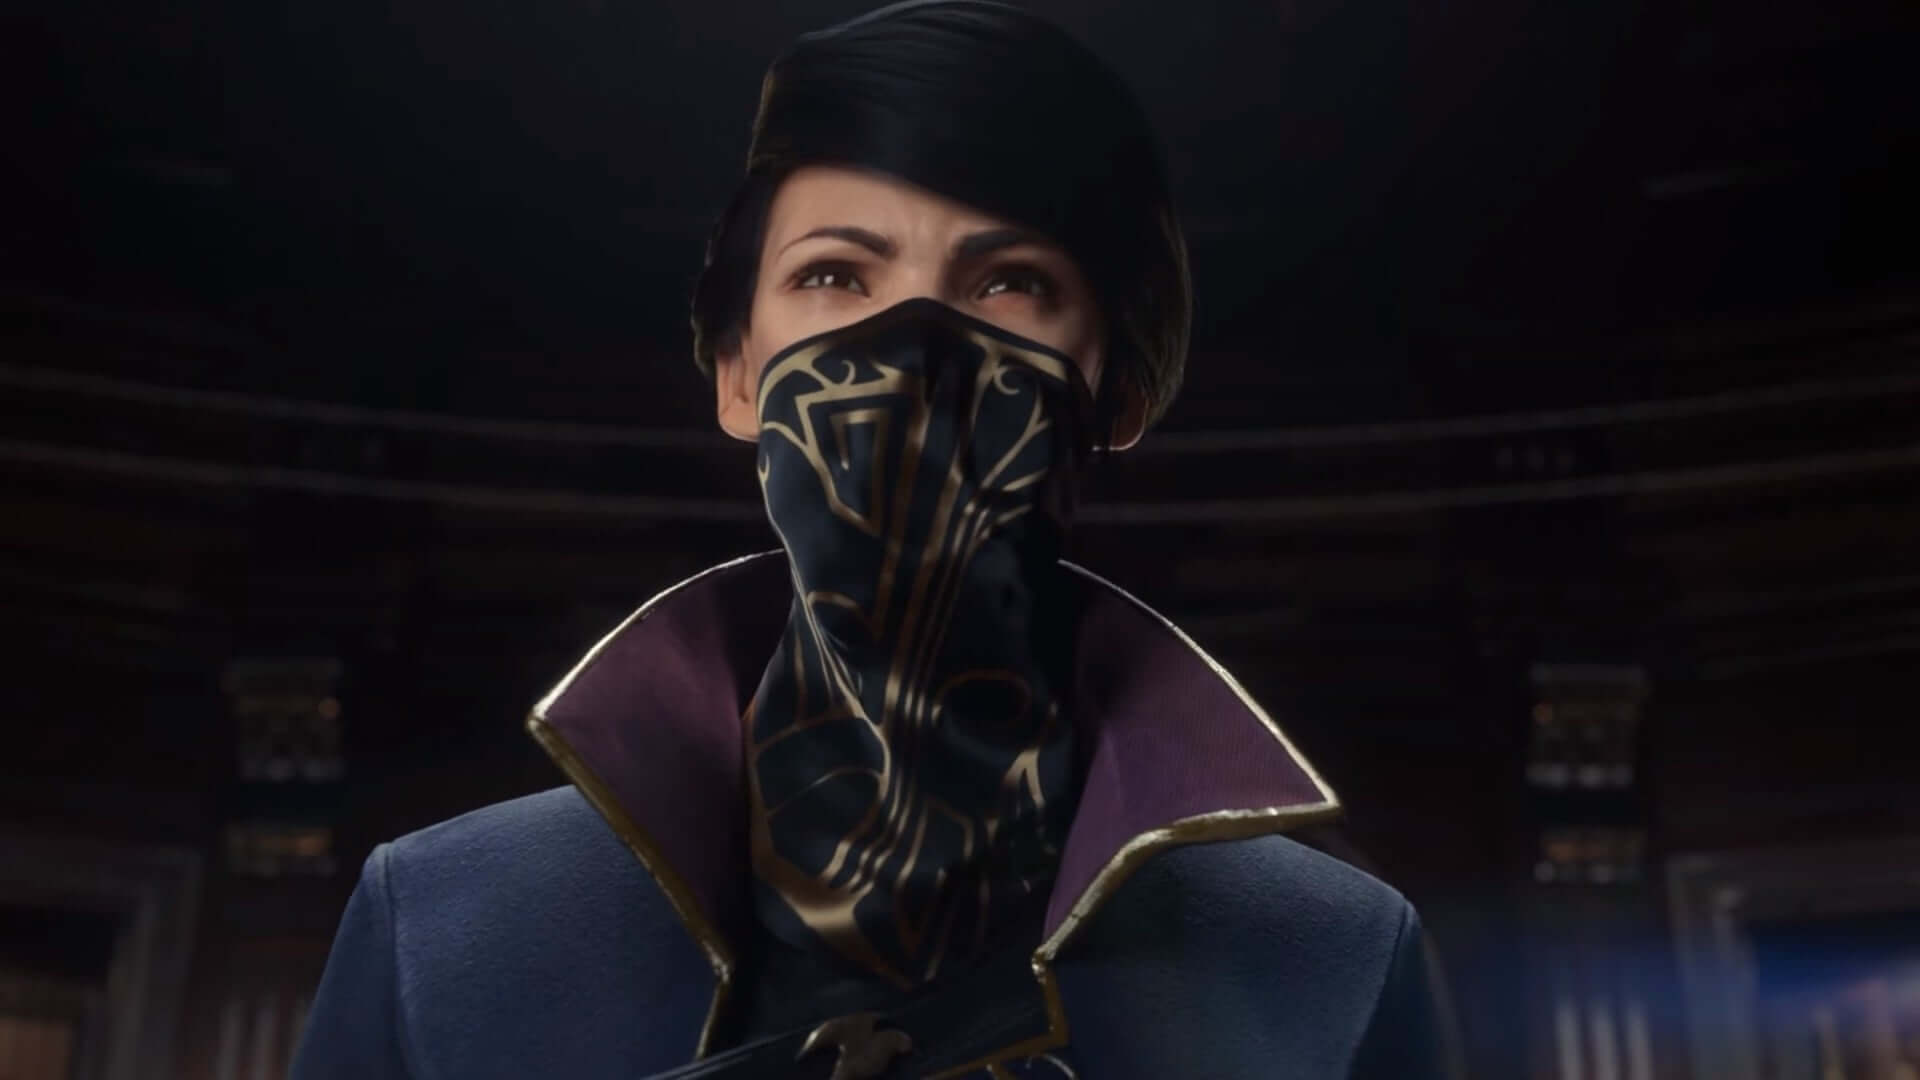 dishonored-2-emily-high-quality-wallpapers